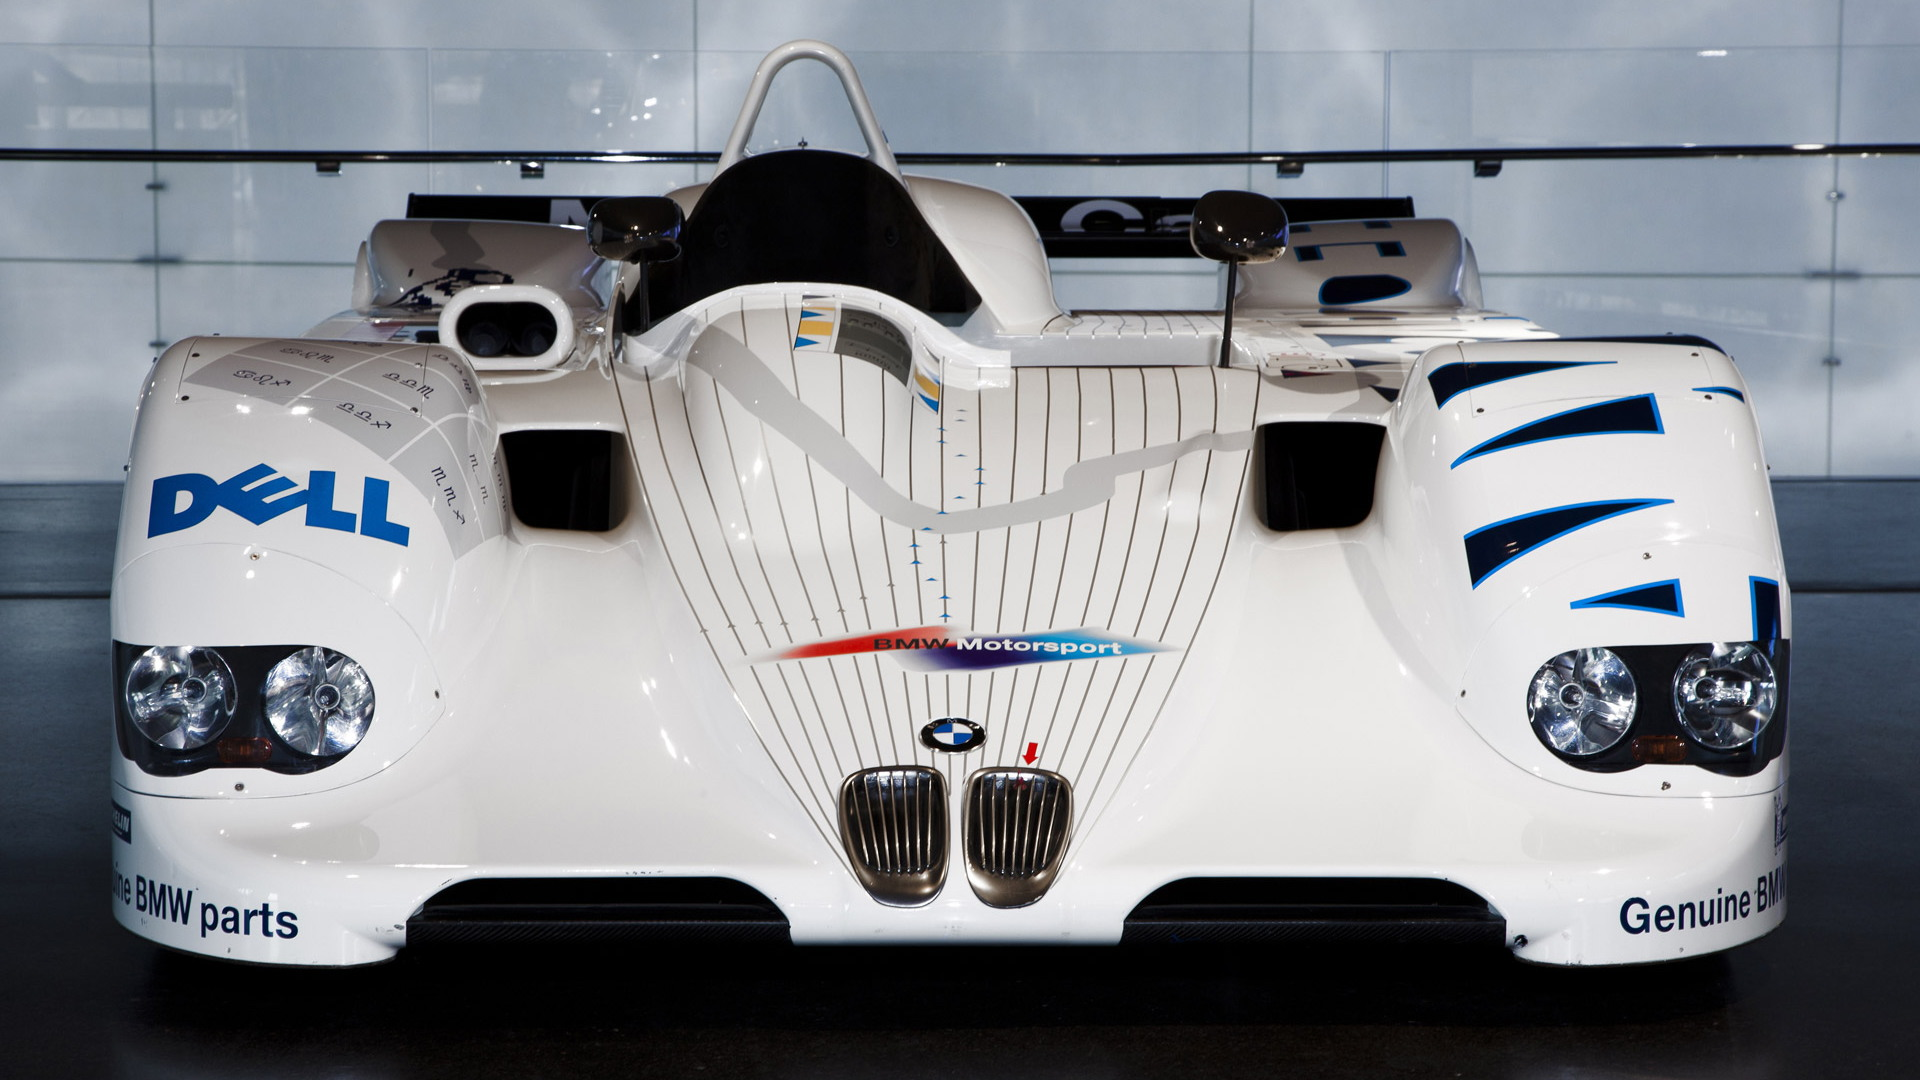 BMW V12 LMR that won overall in the 1999 24 Hours of Le Mans